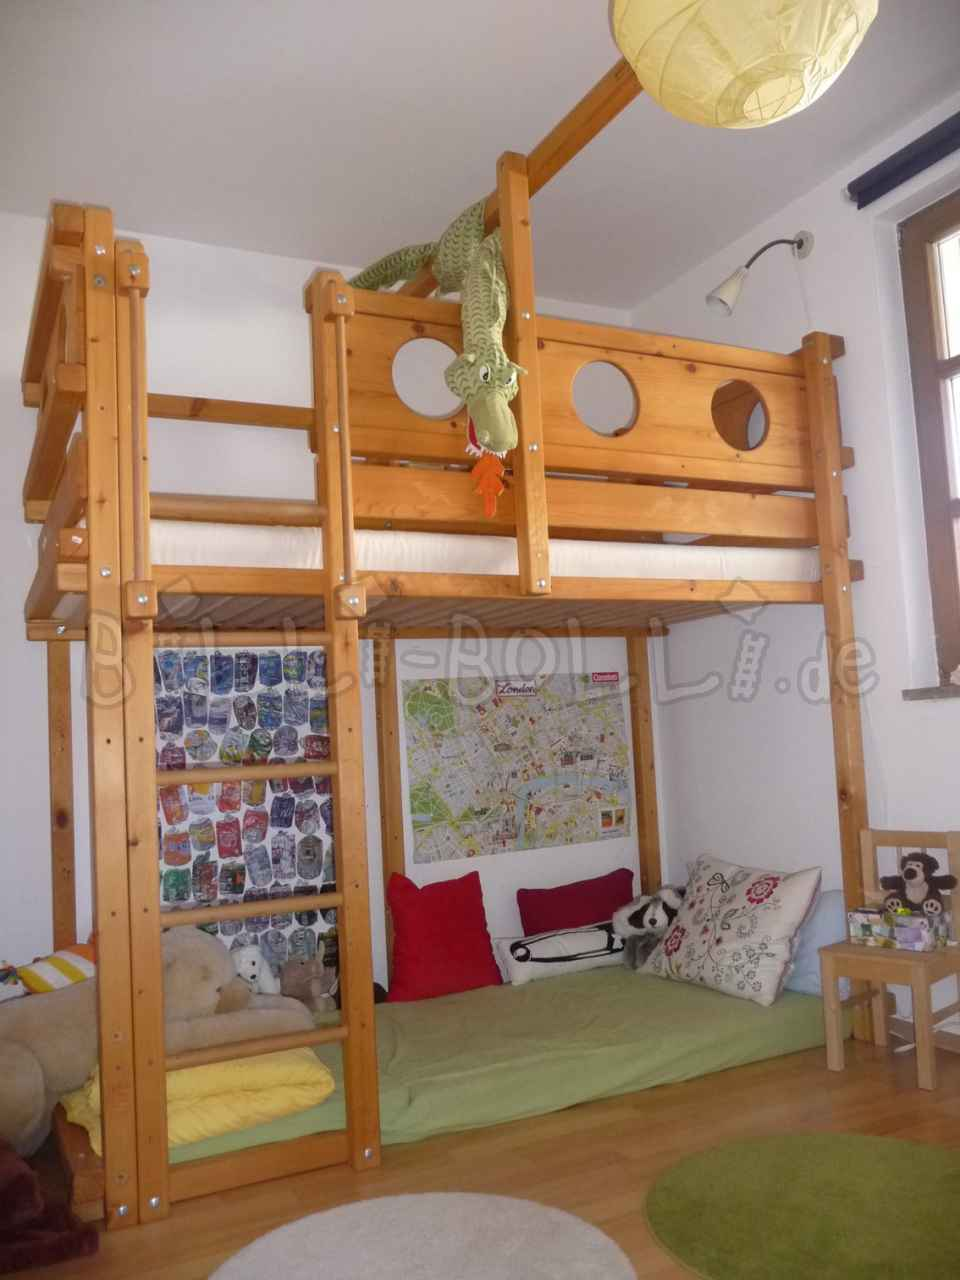 Sparse pirate bunk bed 90 x 200 cm, spruce oiled waxed (second hand loft bed)